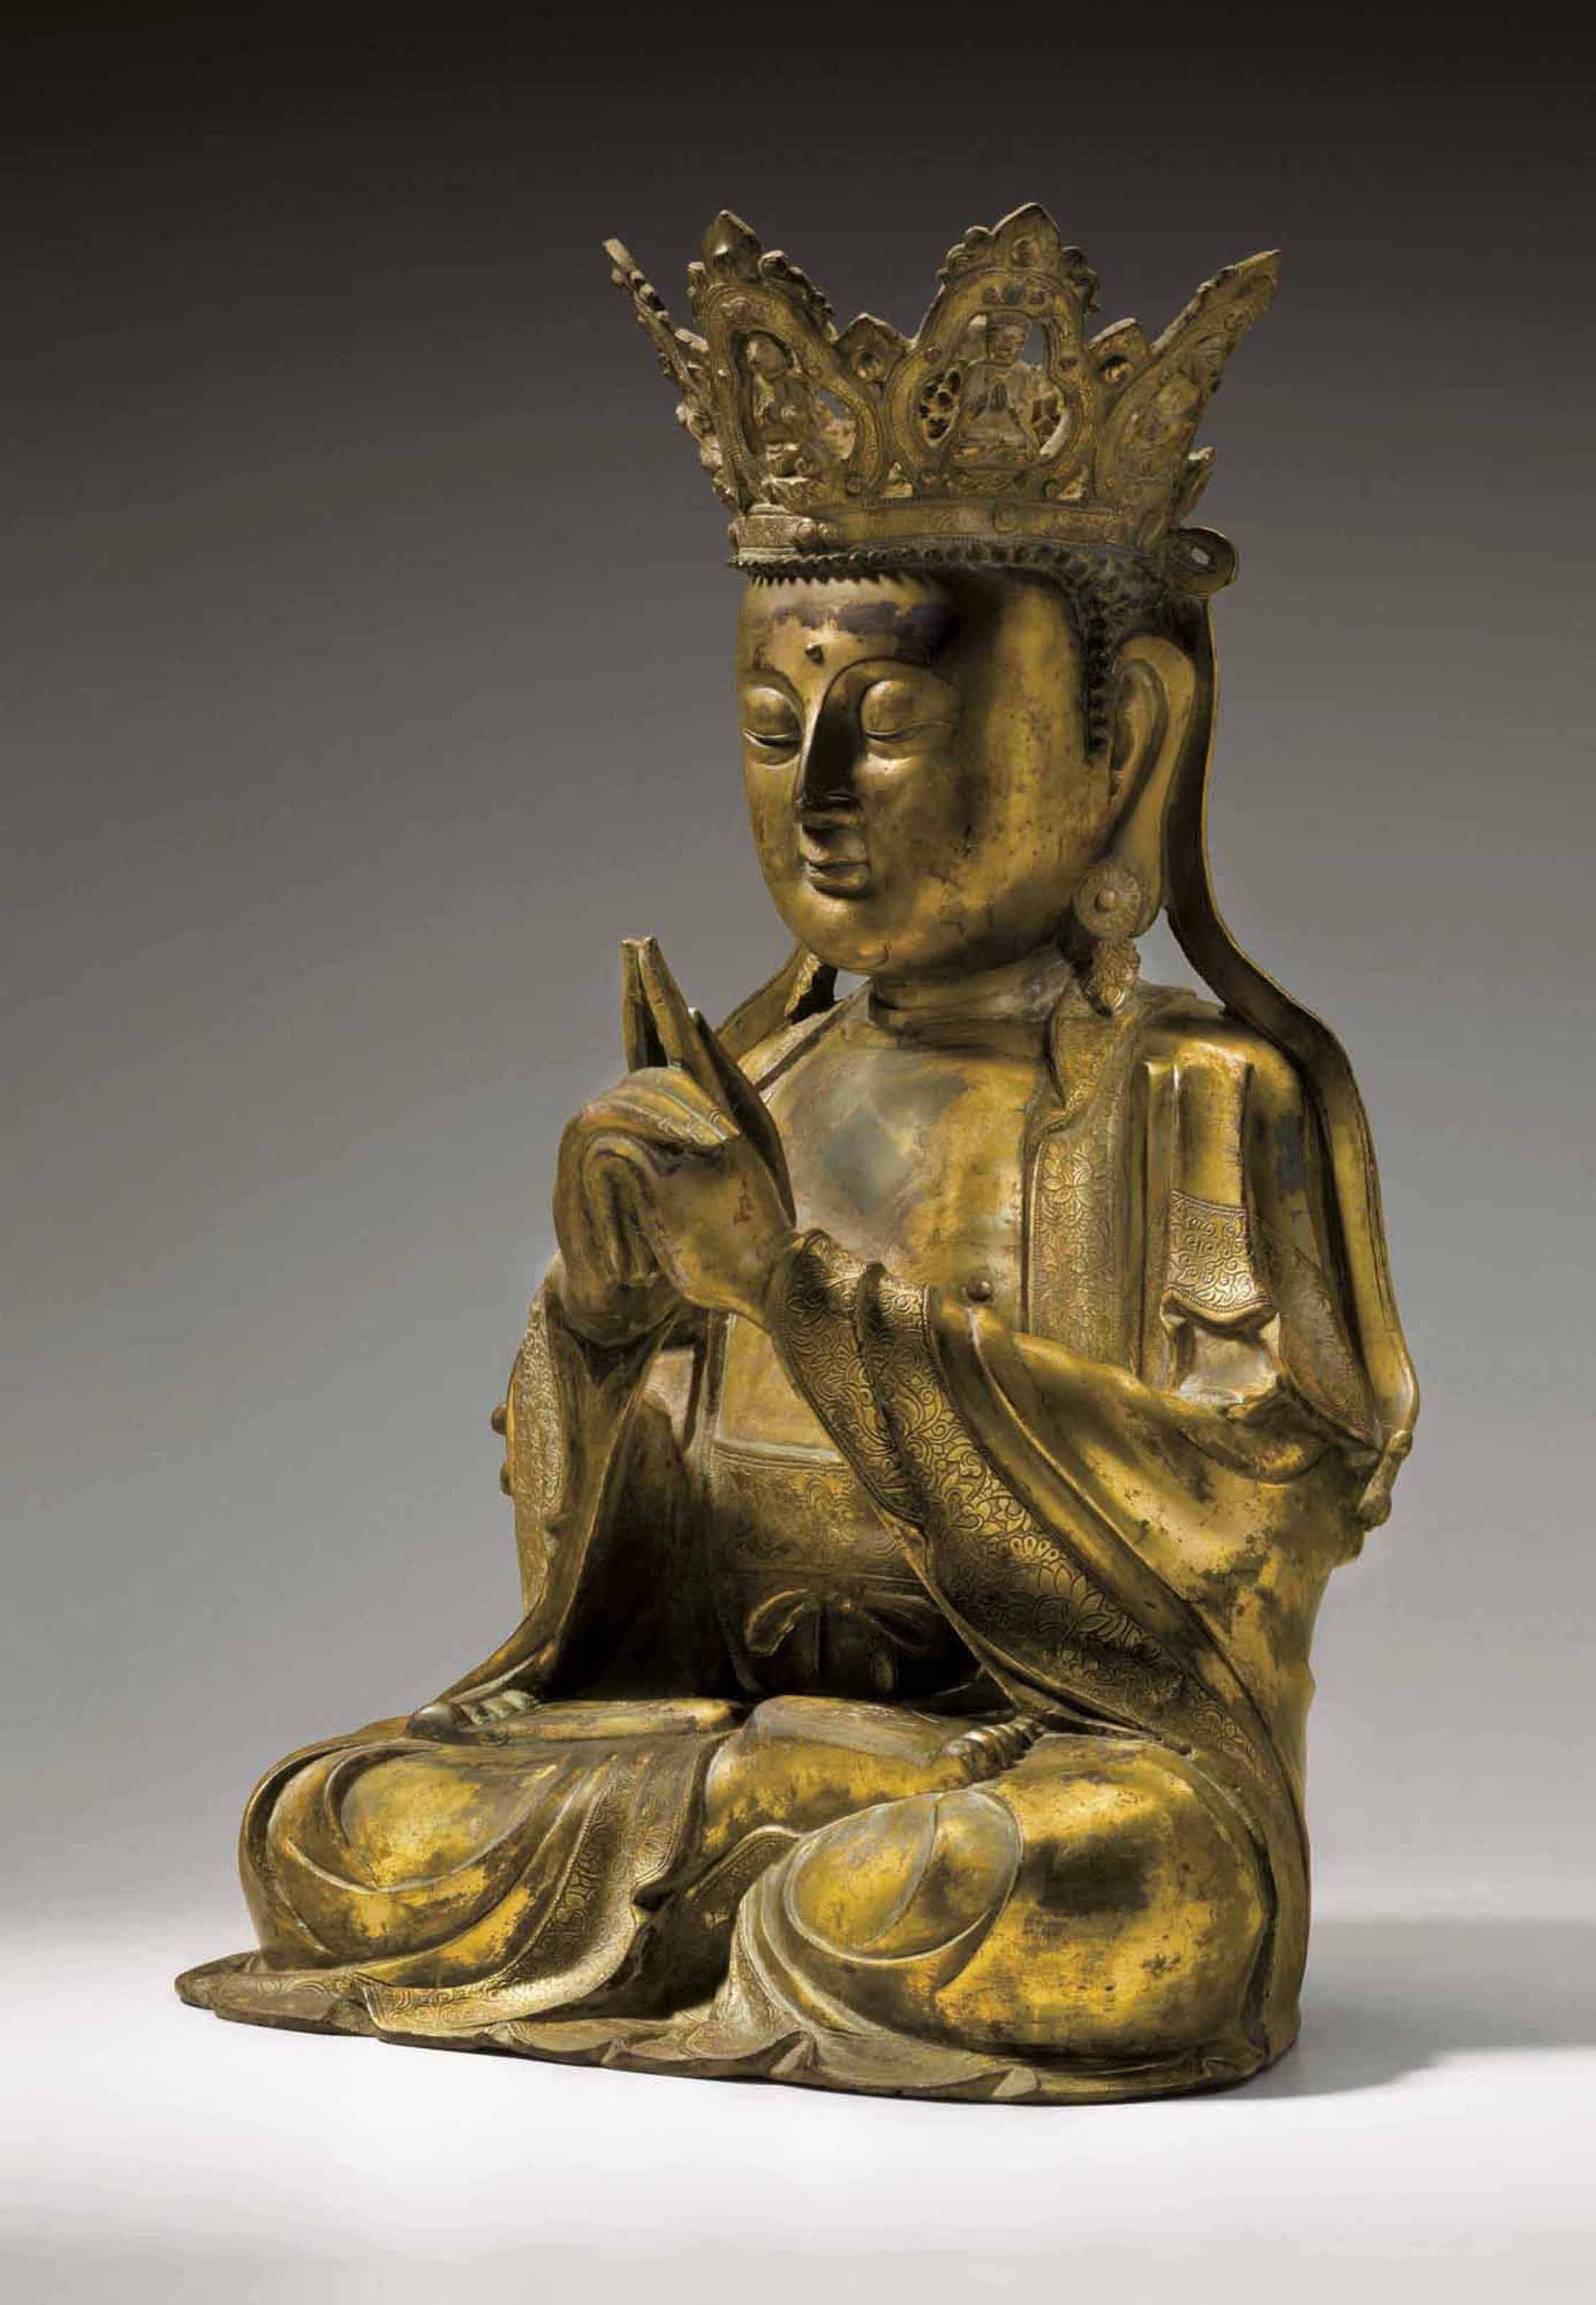 A GILT-BRONZE FIGURE OF VAIROC